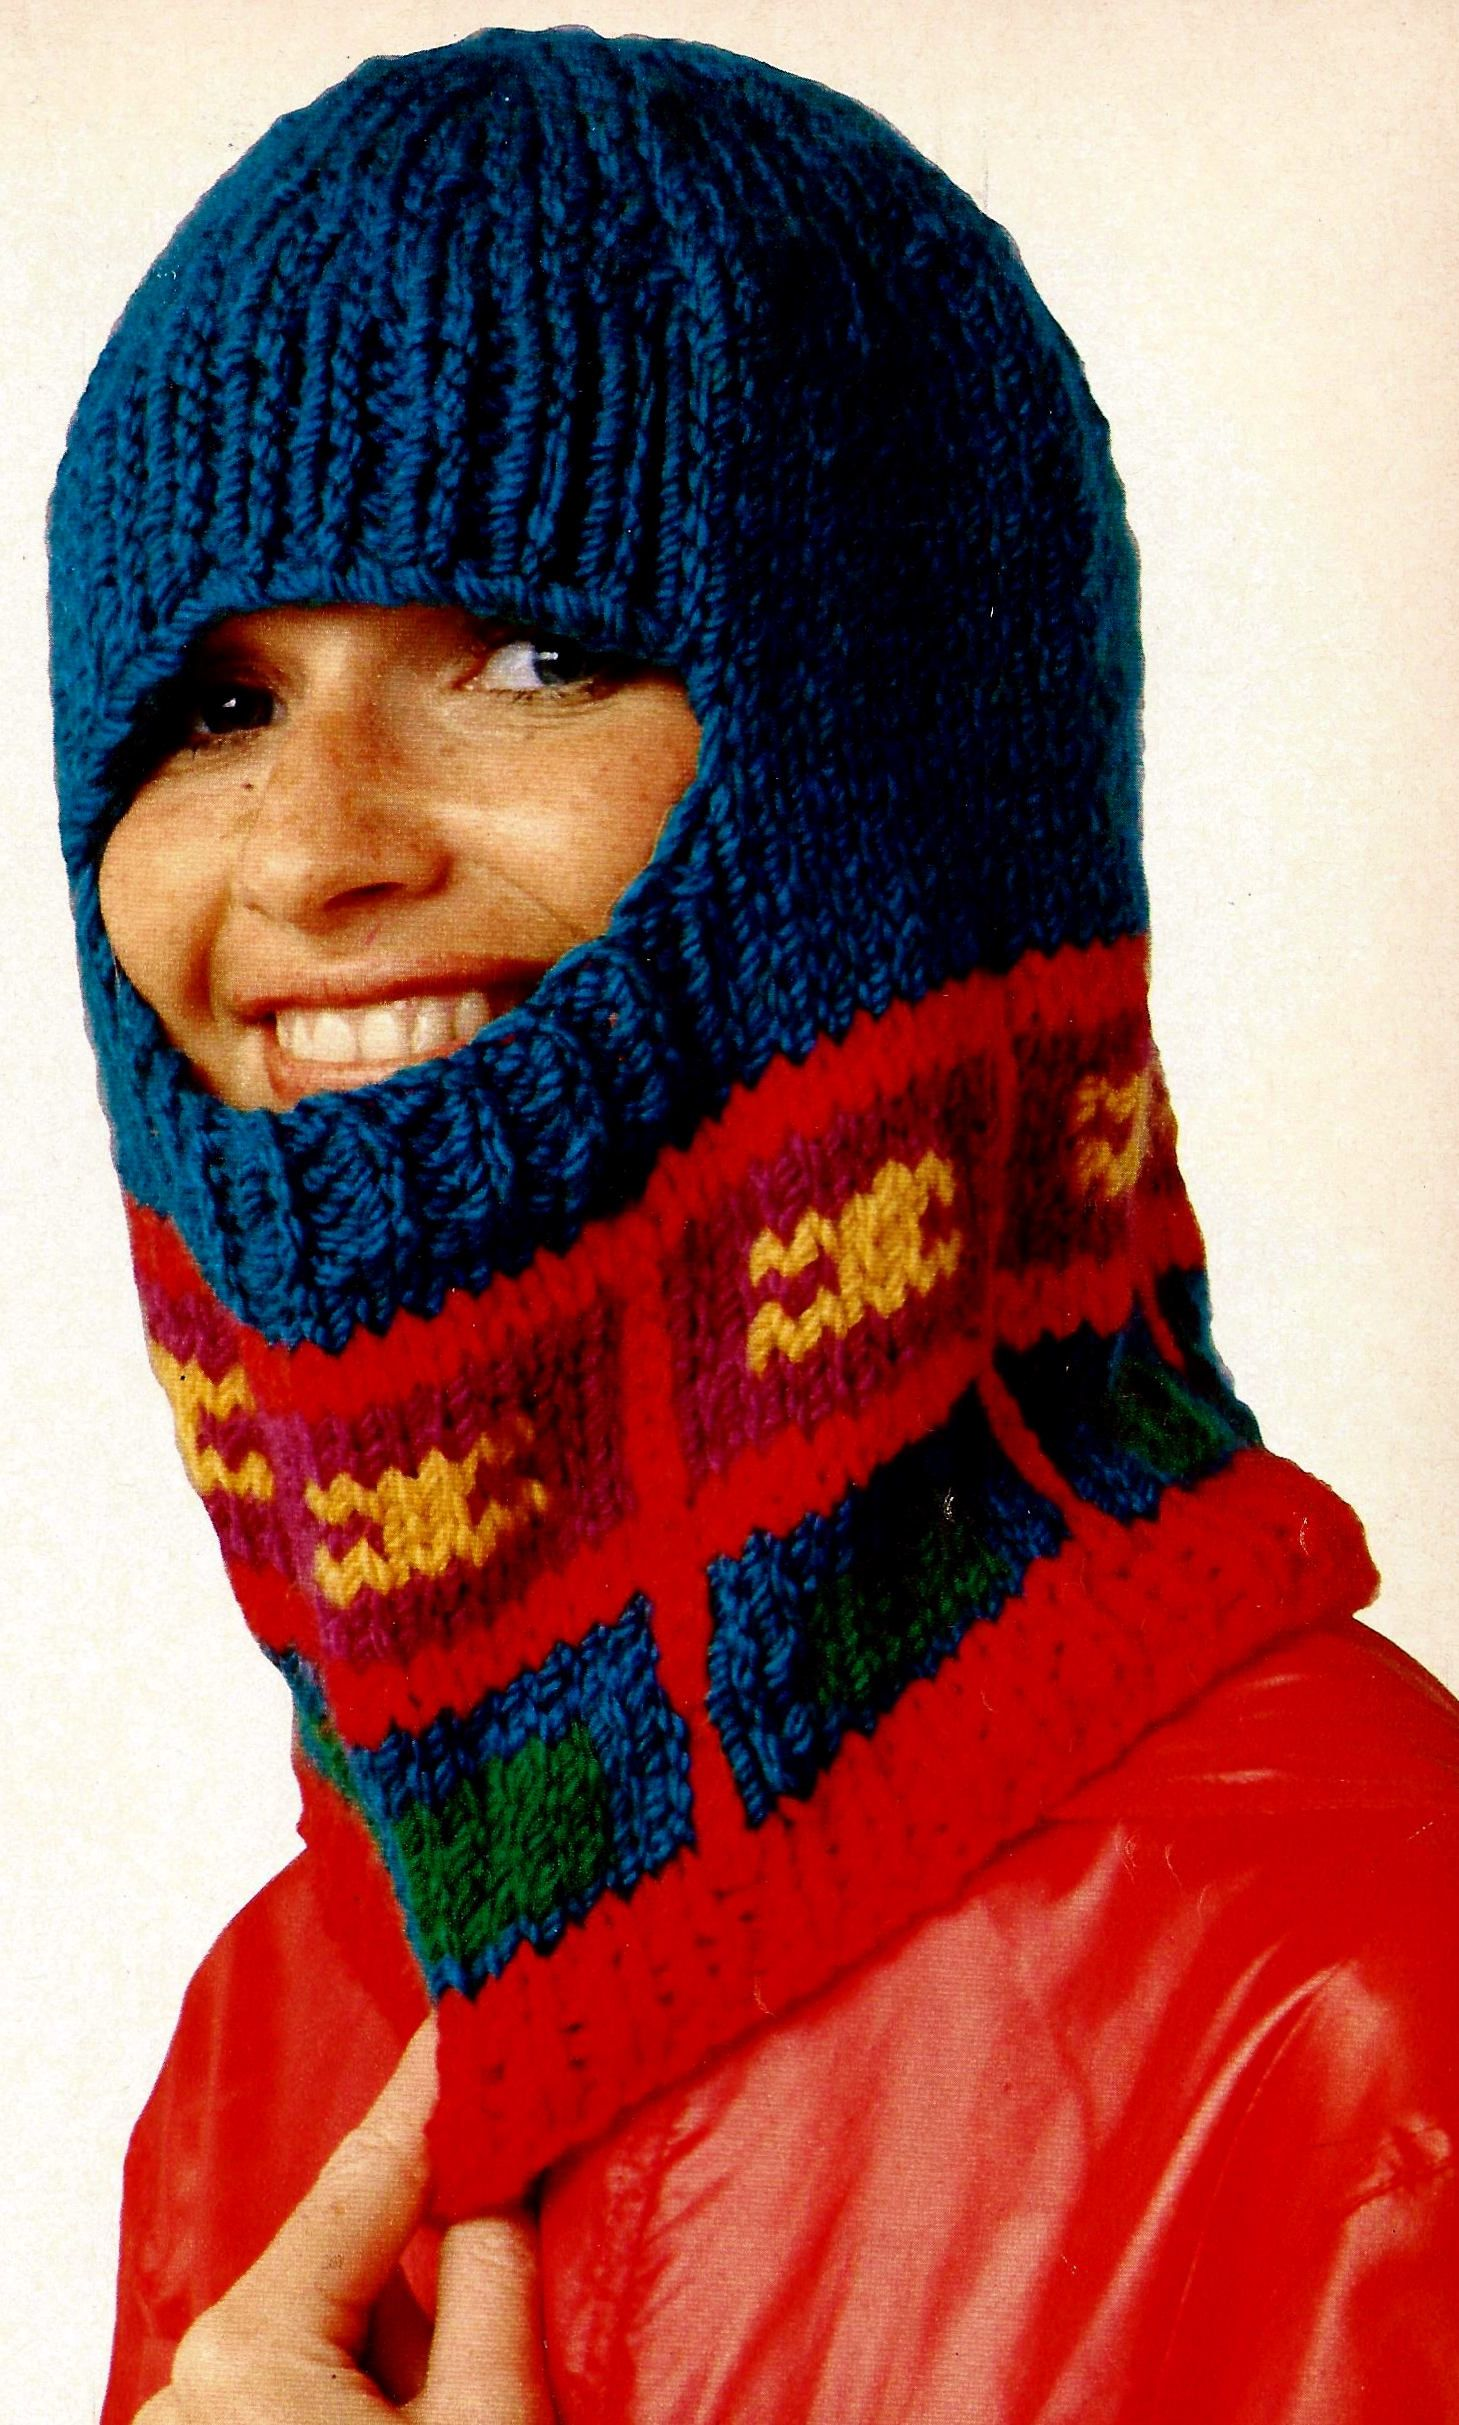 Womens Helmet (Balaclava) and Leg Warmers Vintage Knitting Pattern ...